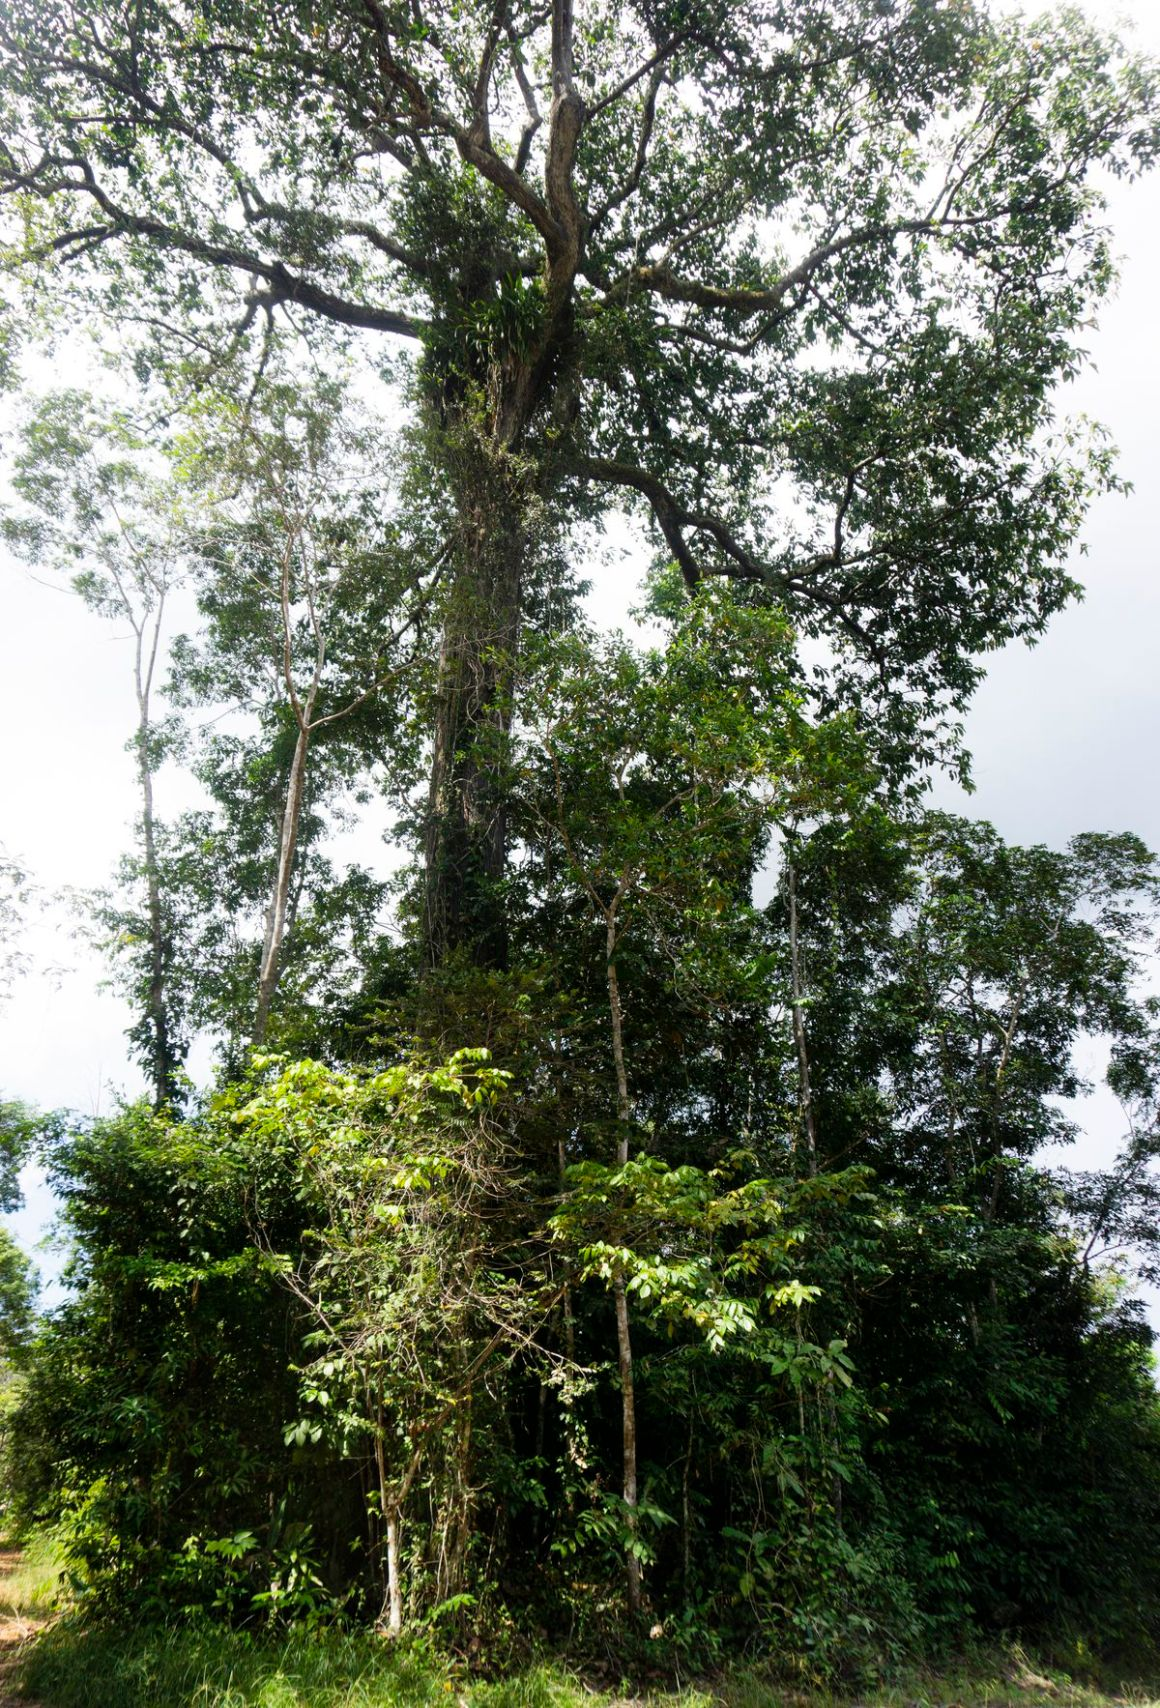 A Brazil nut tree, Bertholletia excelsa, in the Amazon rainforest.